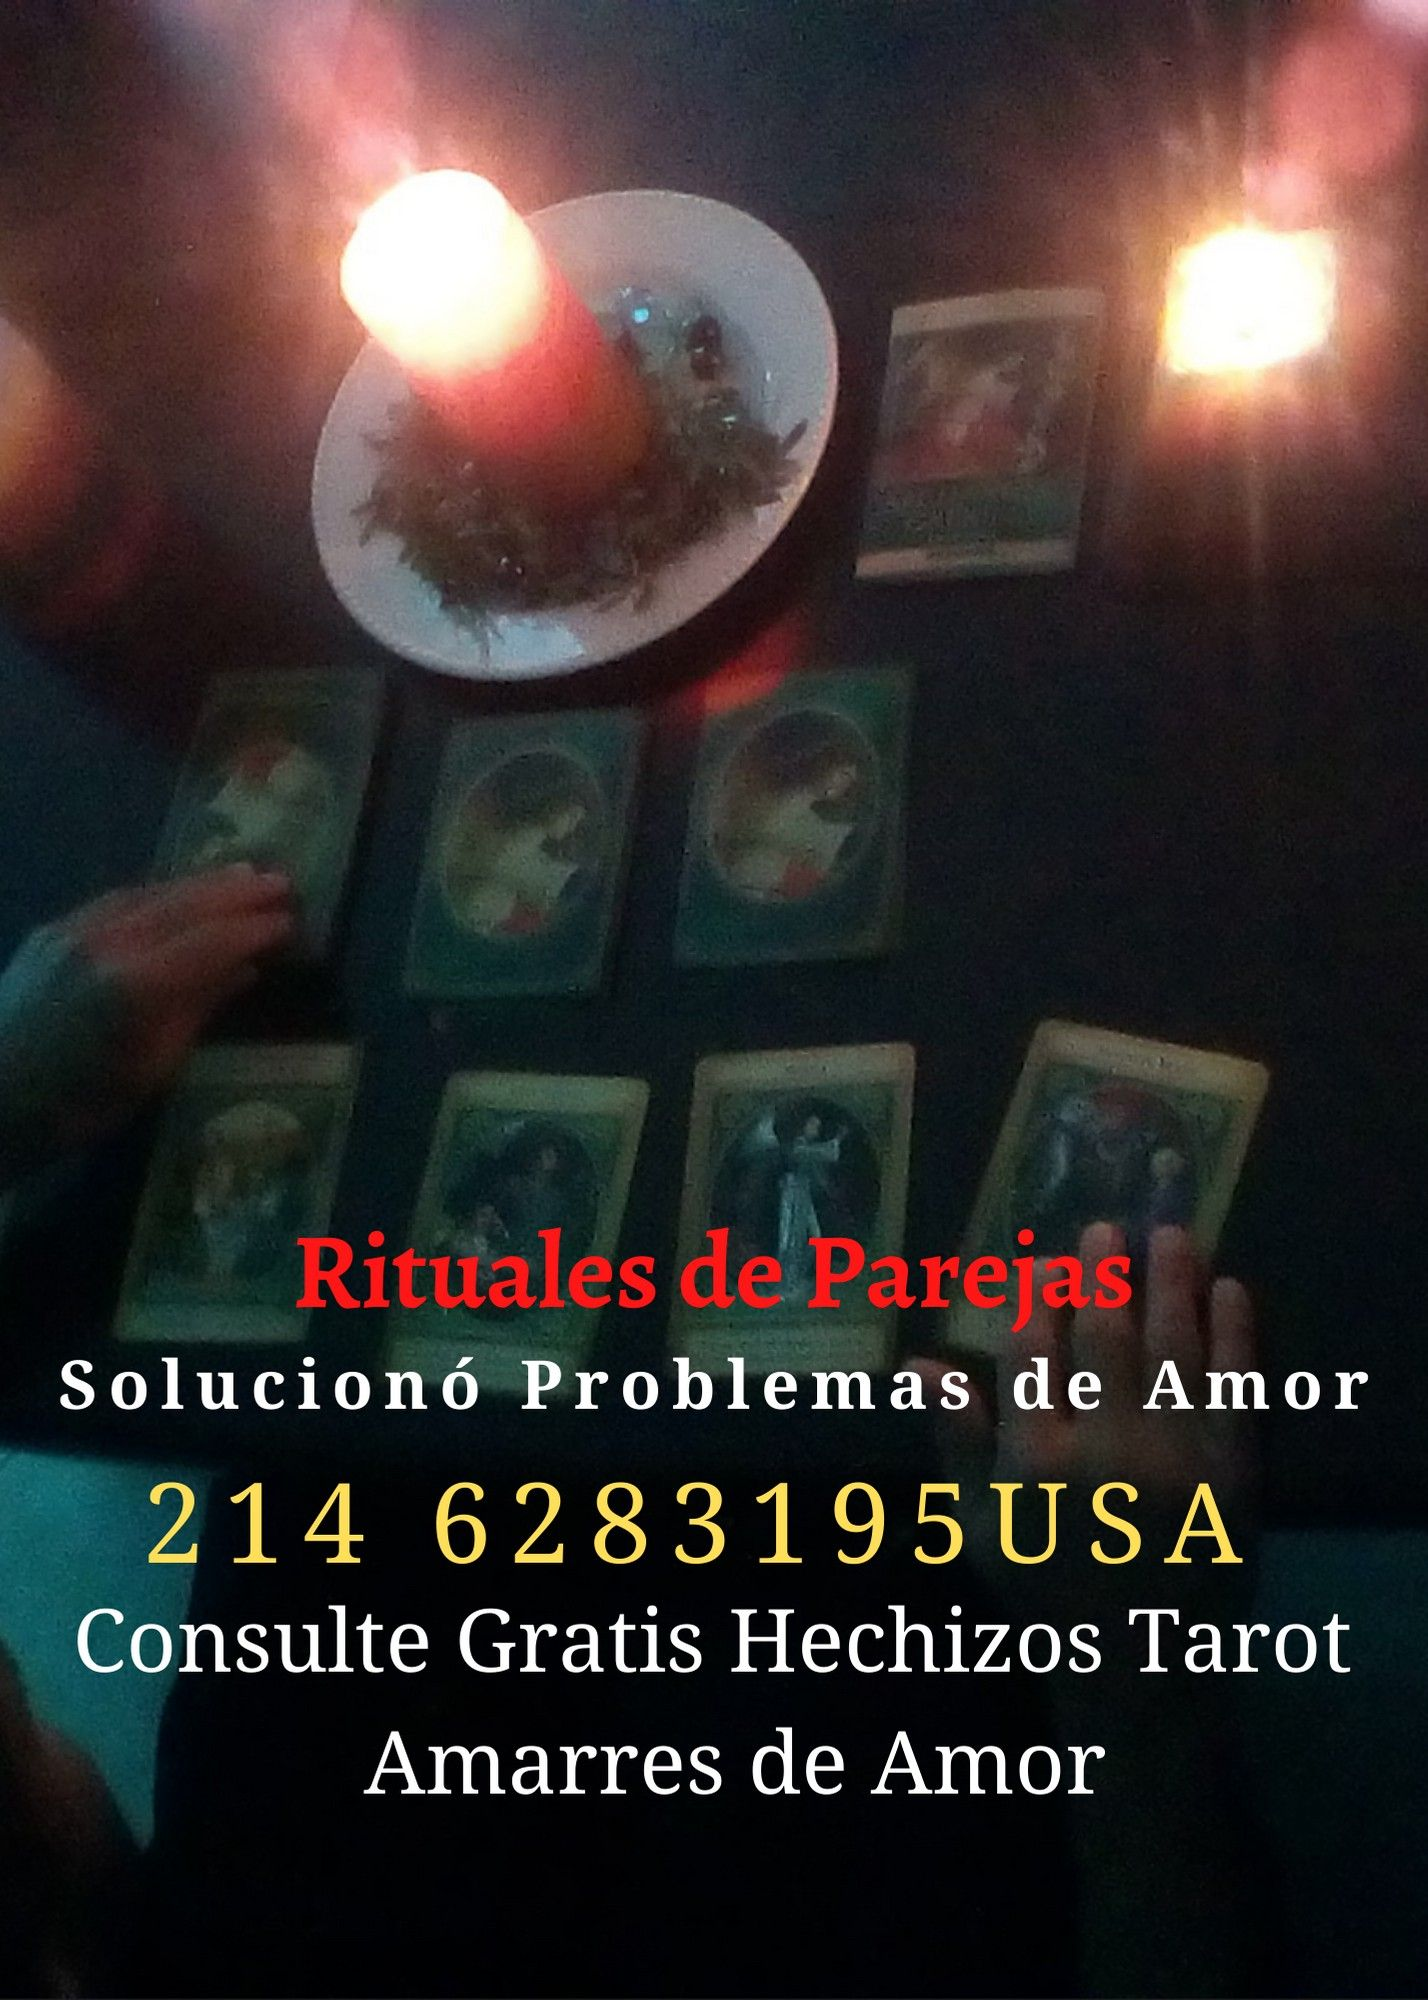 Amarres De Amor Gratis Tarot Recupera A Tu Pareja Estados Unidos Movie Posters Incoming Call Screenshot Poster